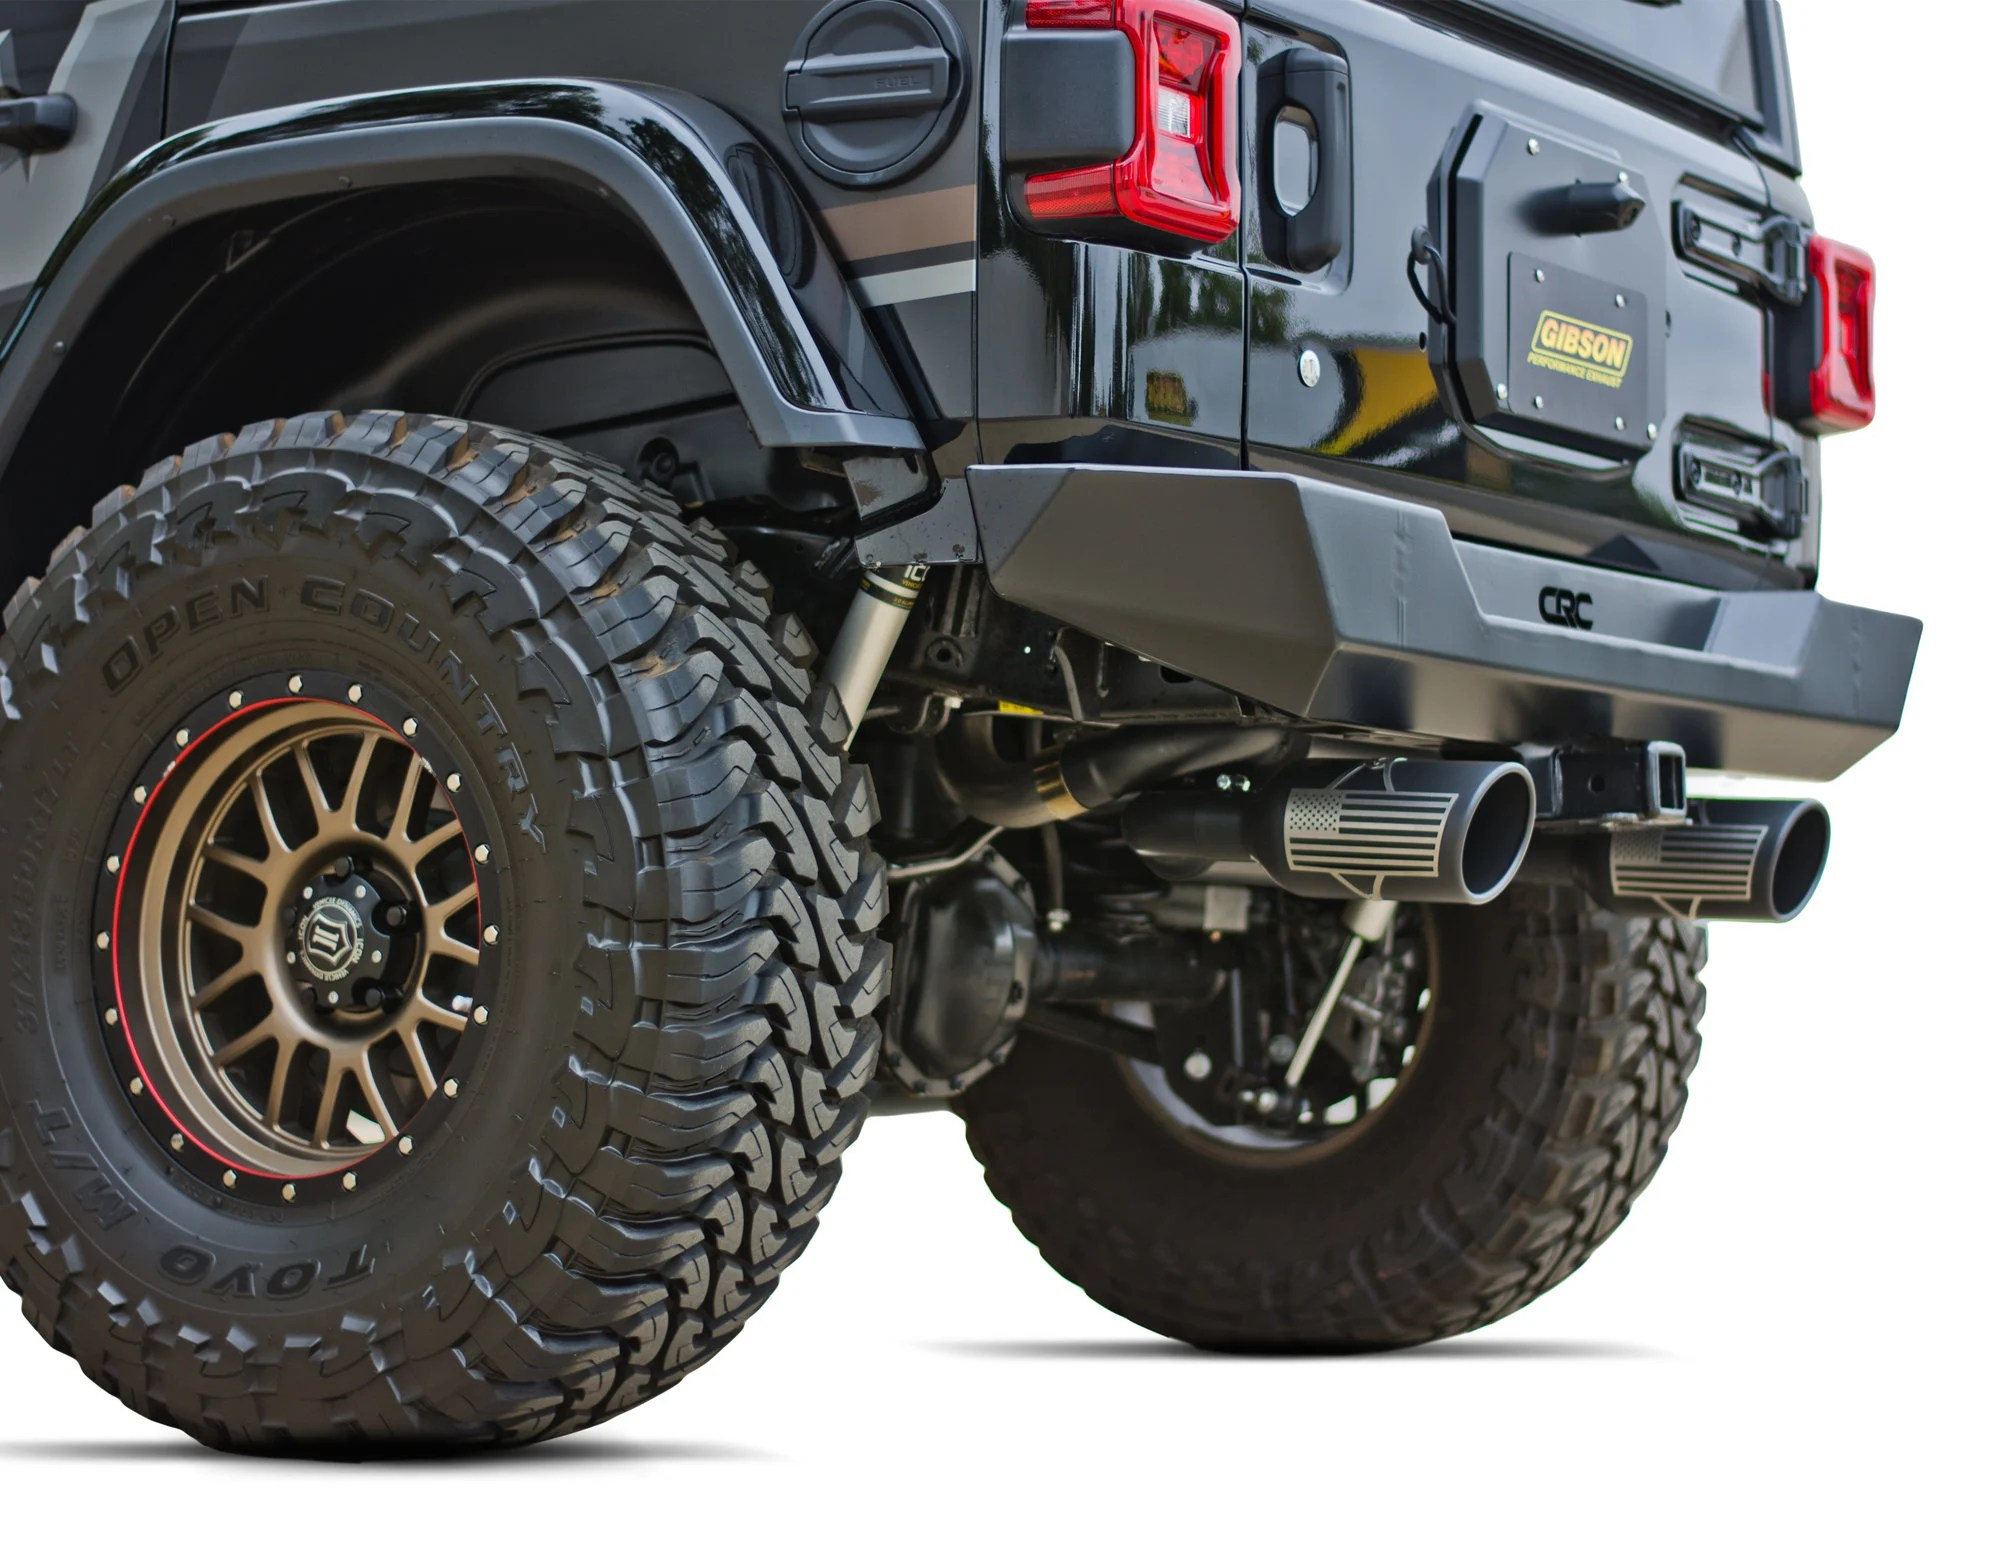 gibson 2 5 patriot series dual axle back exhaust system